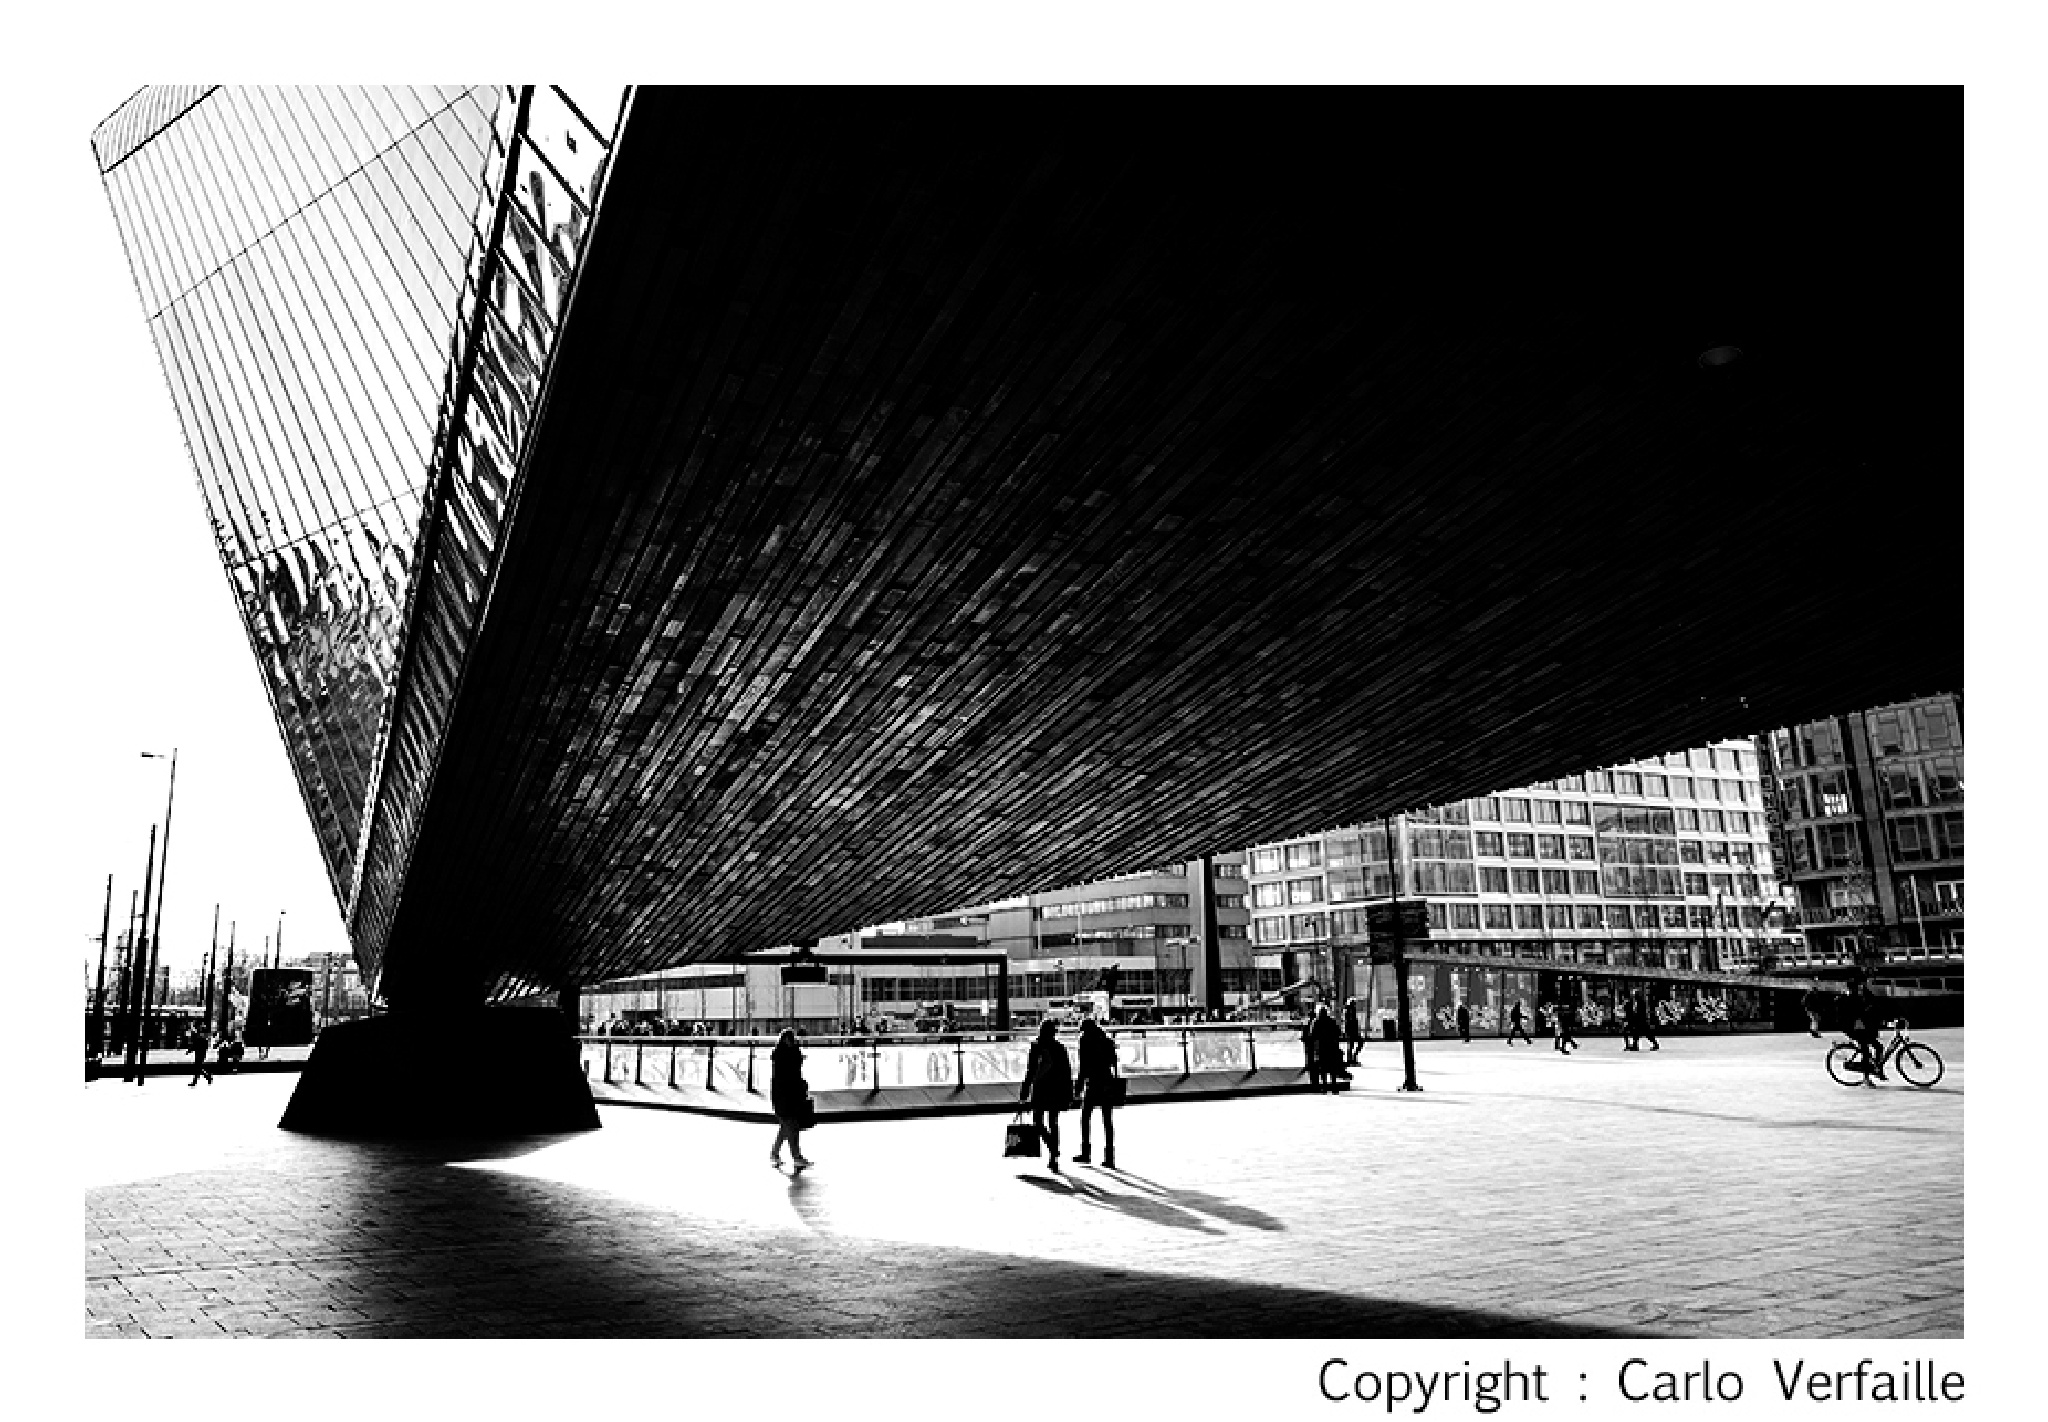 Backlight by carloverfaille